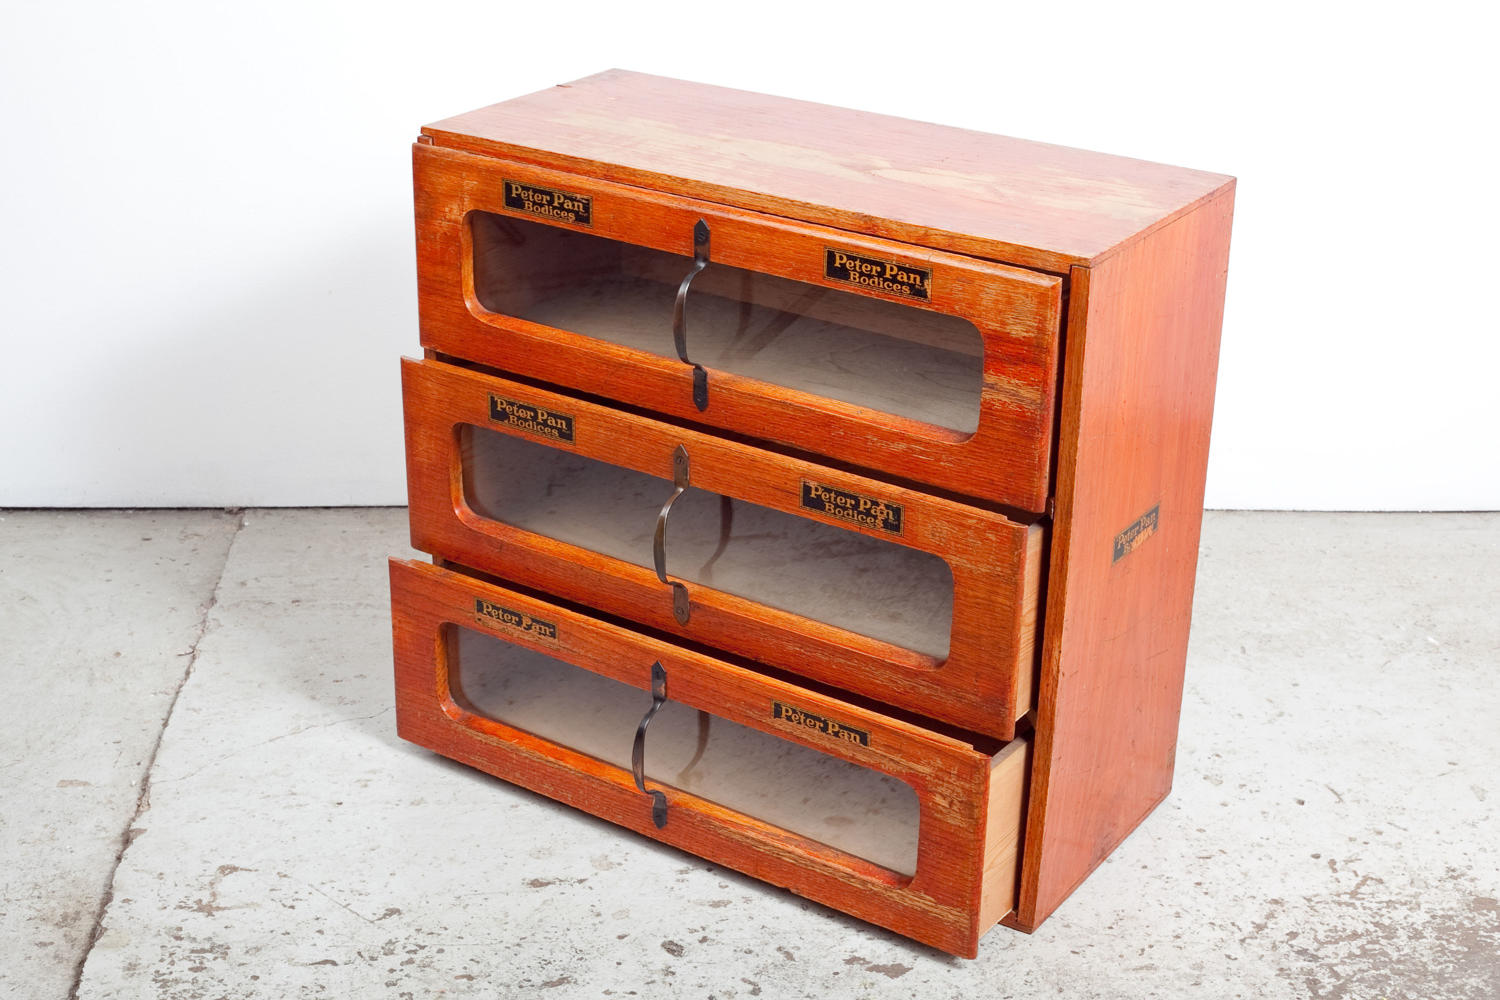 Haberdashery shop display cabinet for Peter Pan Bodices